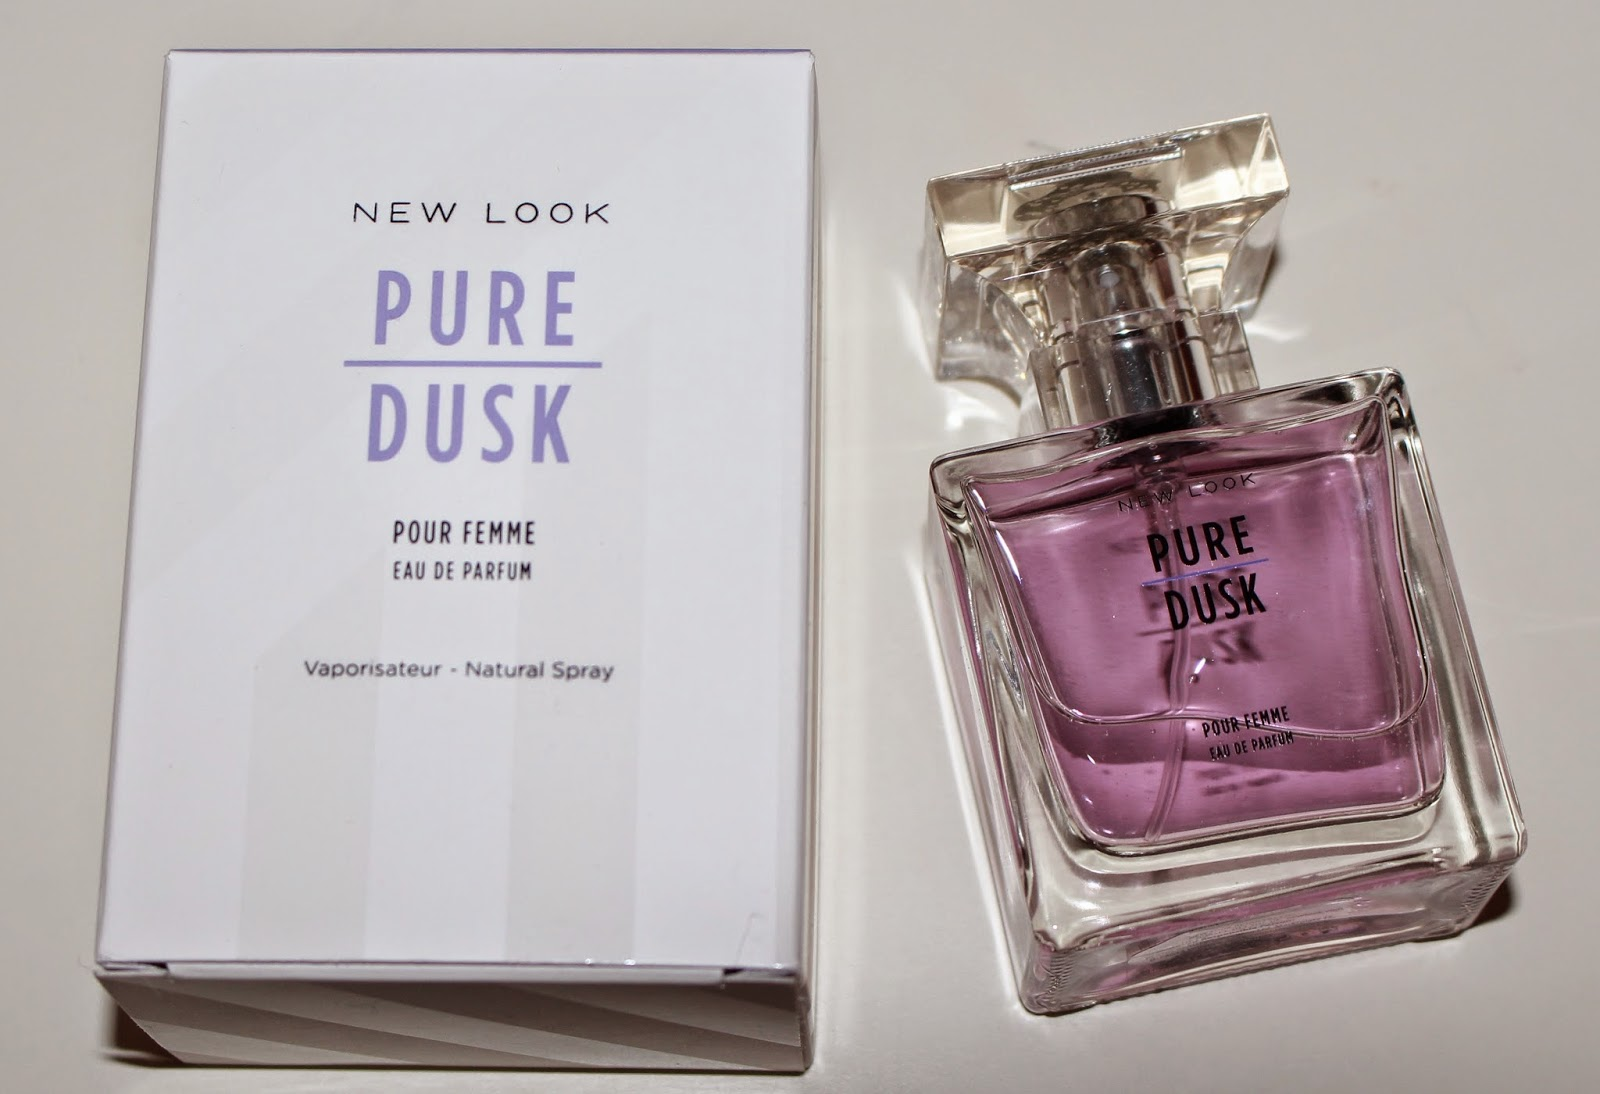 Gemeinsame LANCOME FRAGRANCE DUPE: NEW LOOK PURE DUSK | Sarah's Style Statement #SR_83